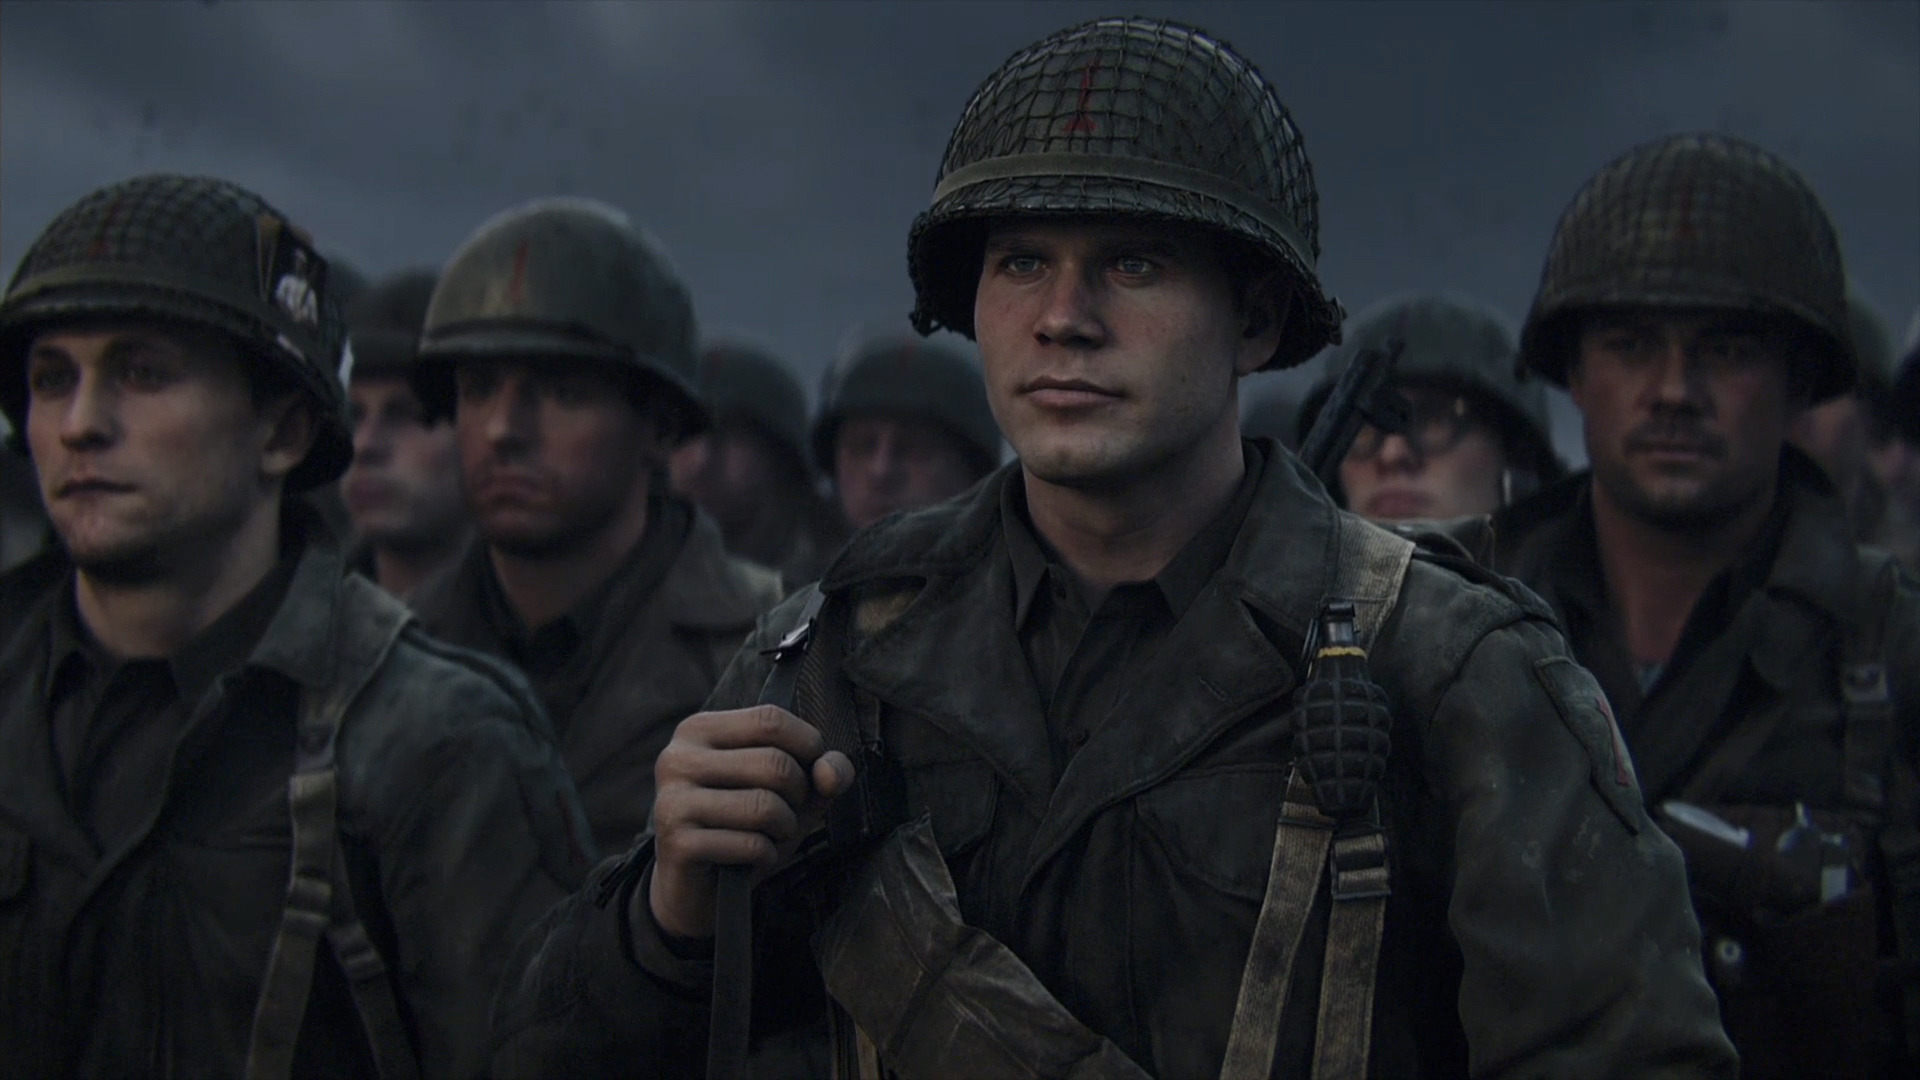 Wolfenstein 2 Shows More Respect for World War 2 Than the Latest 1920x1080